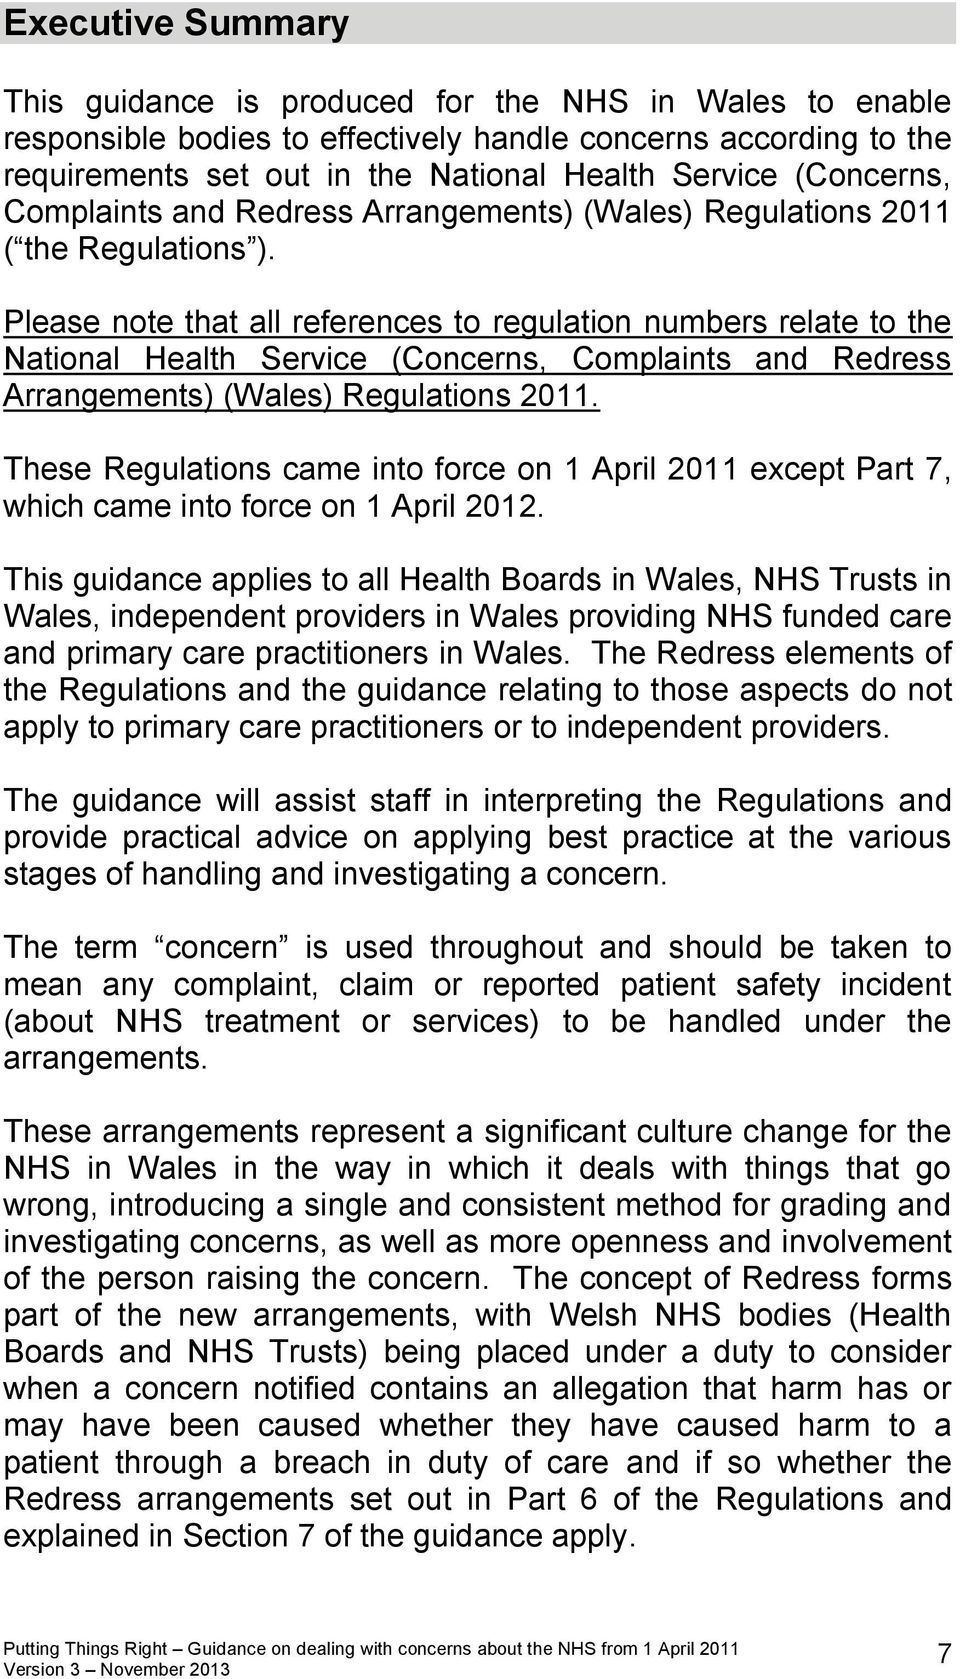 Please note that all references to regulation numbers relate to the National Health Service (Concerns, Complaints and Redress Arrangements) (Wales) Regulations 2011.